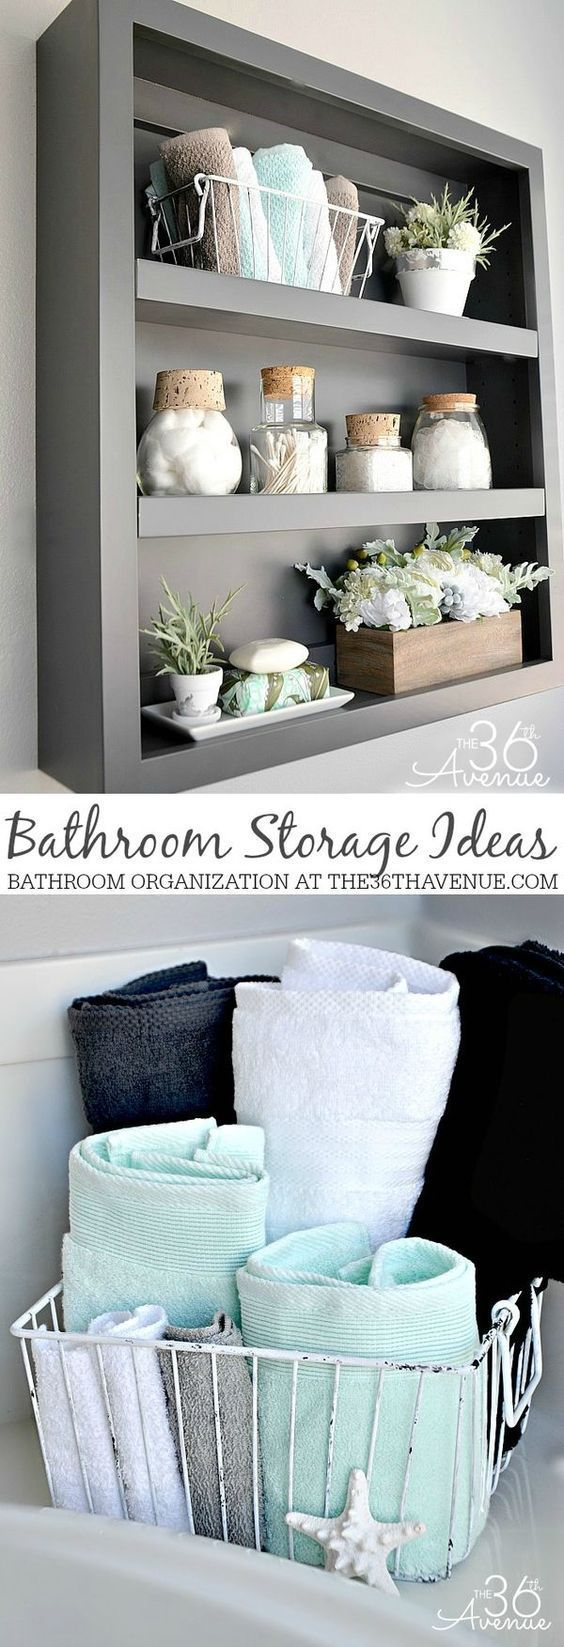 Small Bathroom Design On Pinterest best 25+ ideas for small bathrooms ideas on pinterest | inspired